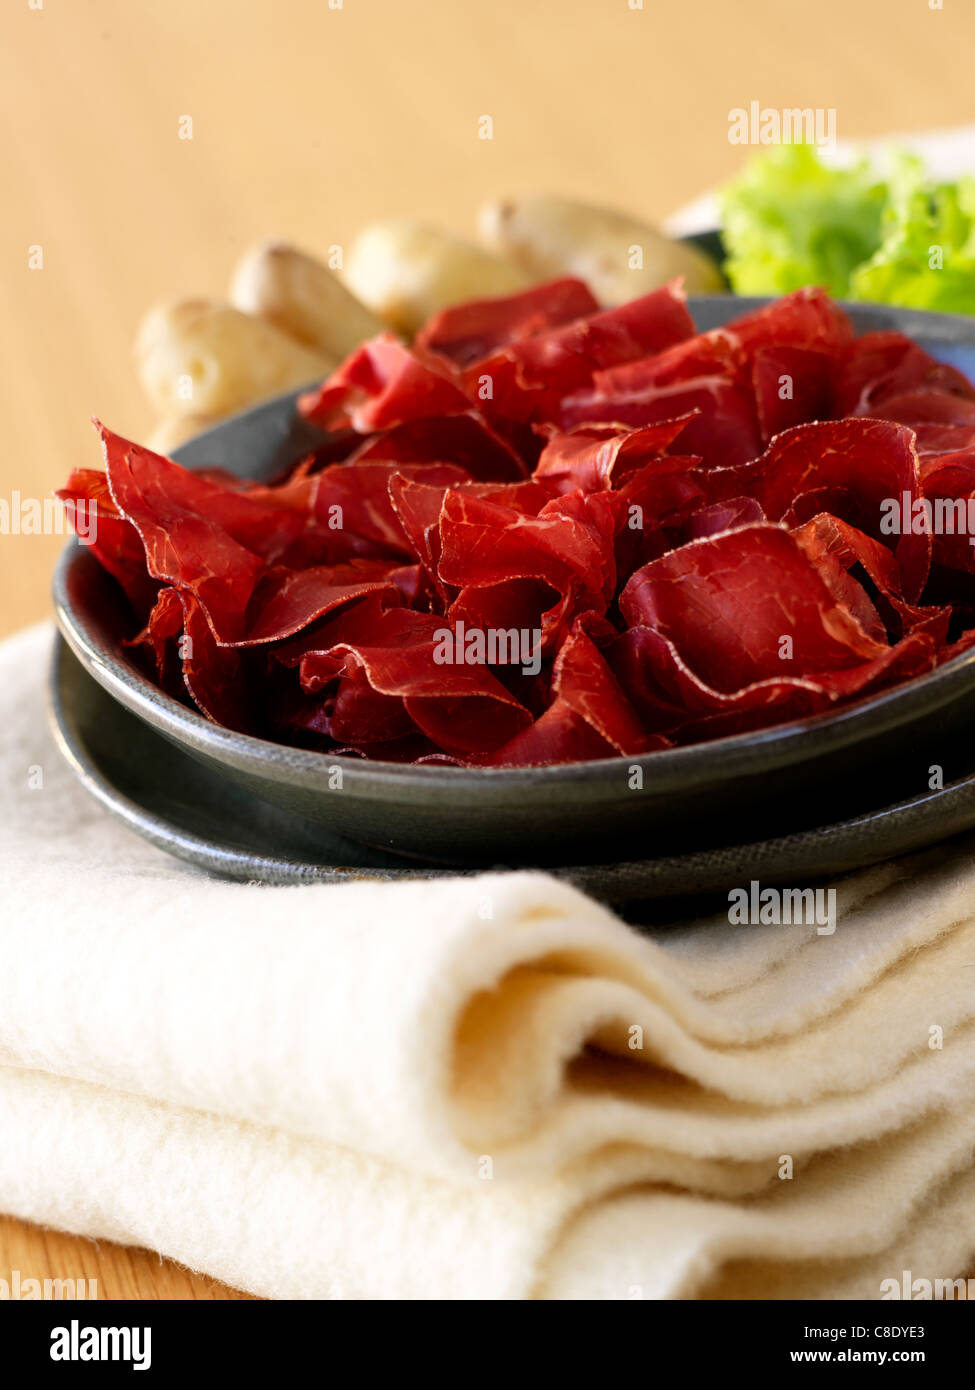 Thinly sliced grisons meat - Stock Image